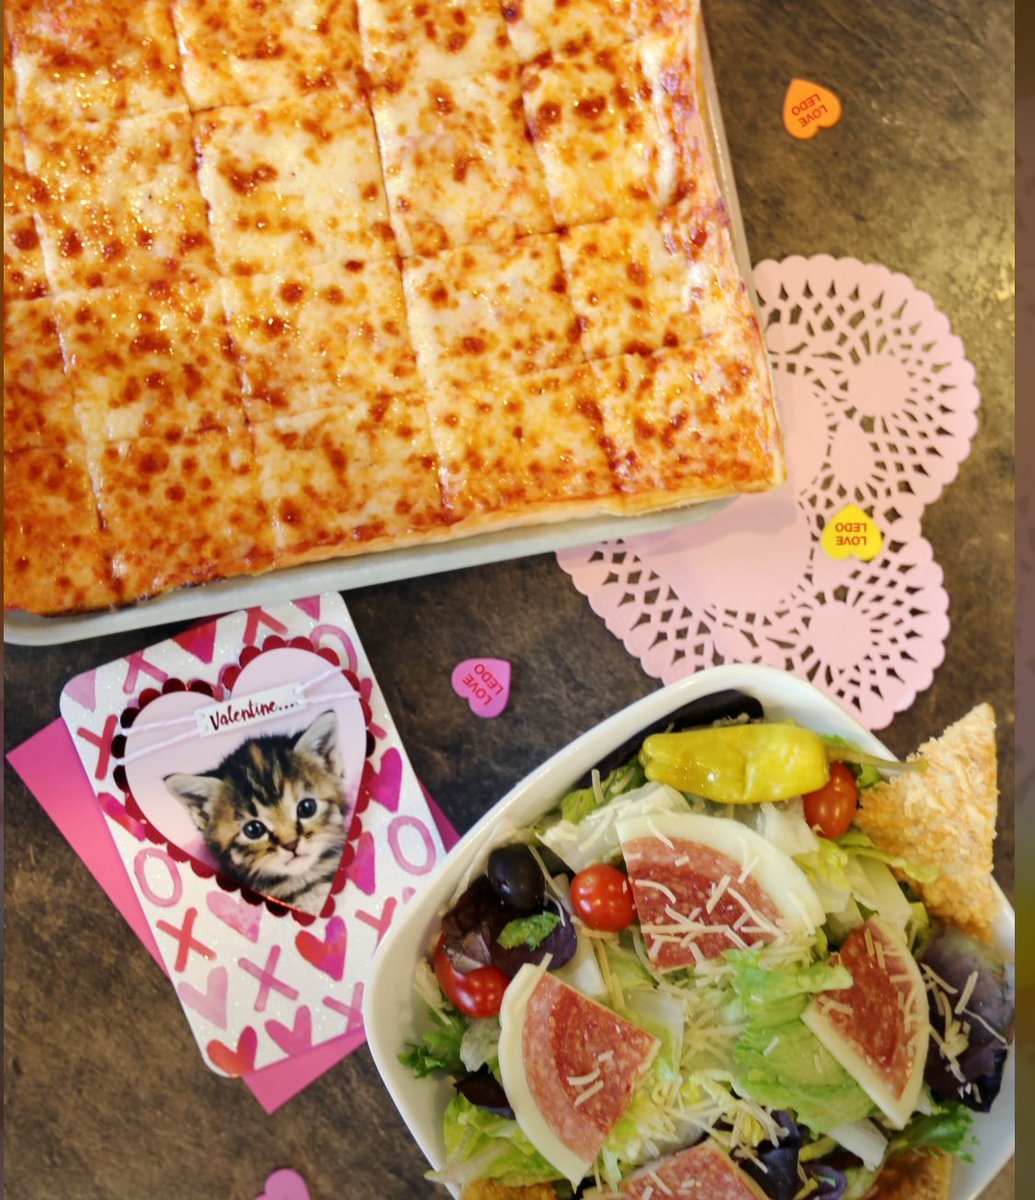 #ValentinesDay GIVEAWAY   RETWEET & FOLLOW  to be entered to win a $50 #LEDOPIZZA GIFT CARD!  2 winners picked randomly at 10pm on 2/14/20! <br>http://pic.twitter.com/kTdQJtxTp8